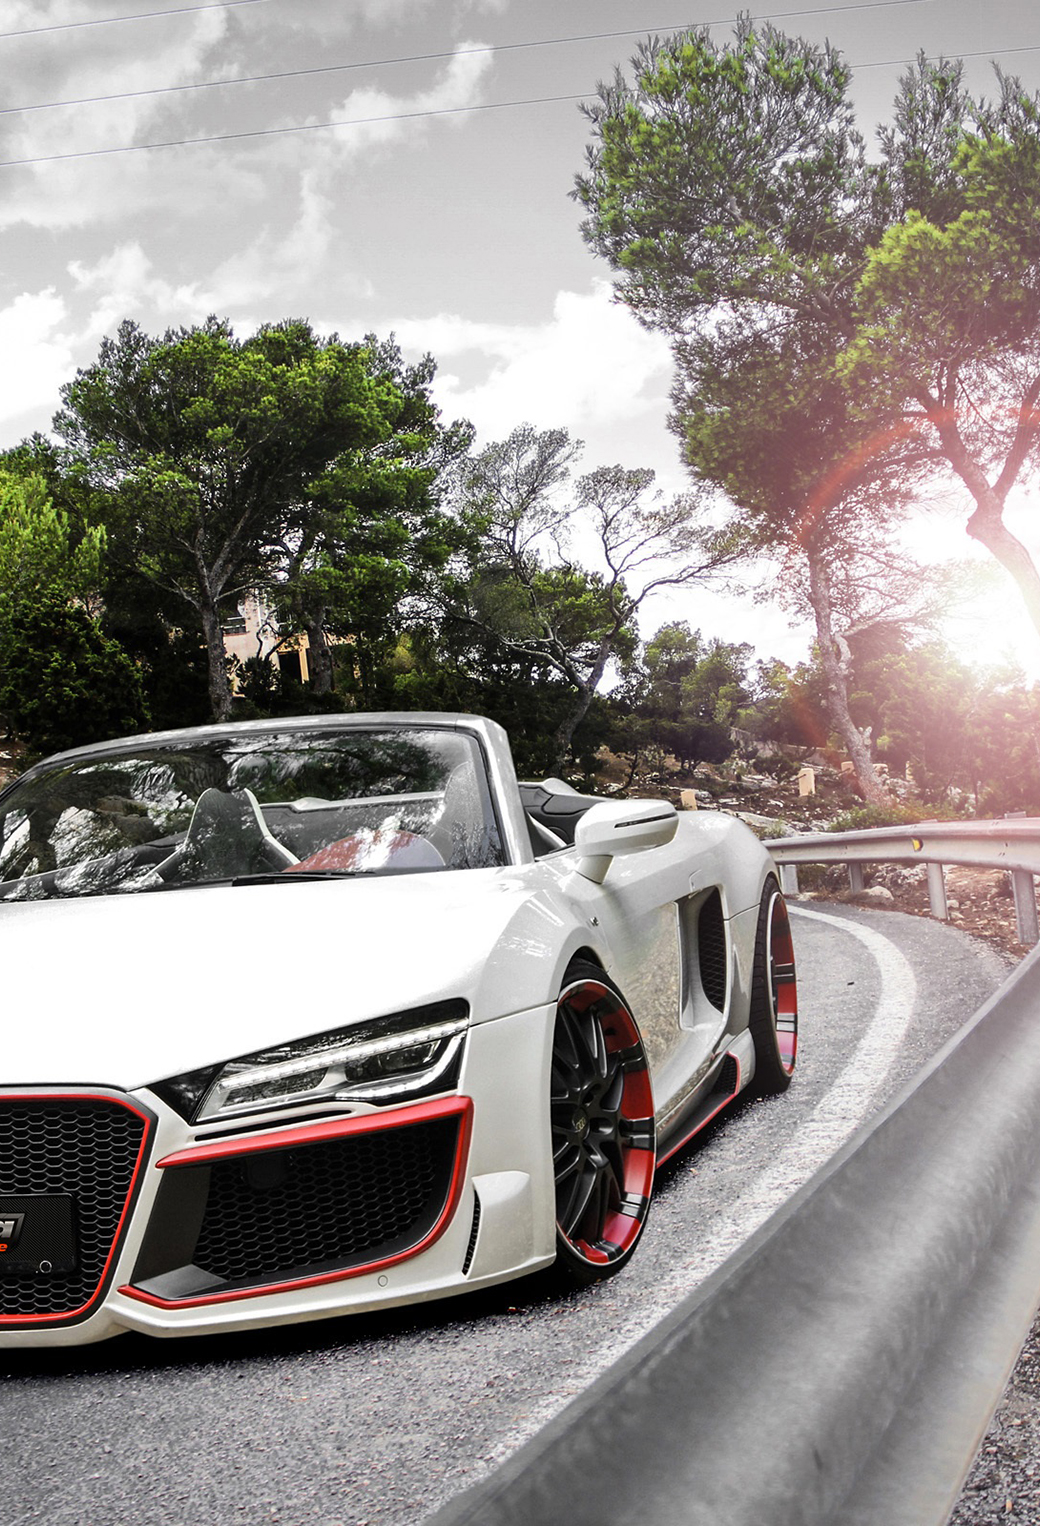 Audi R8 Wallpaper Iphone 6 Audi R8 V10 Spyder Wallpaper For Iphone X 8 7 6 Free